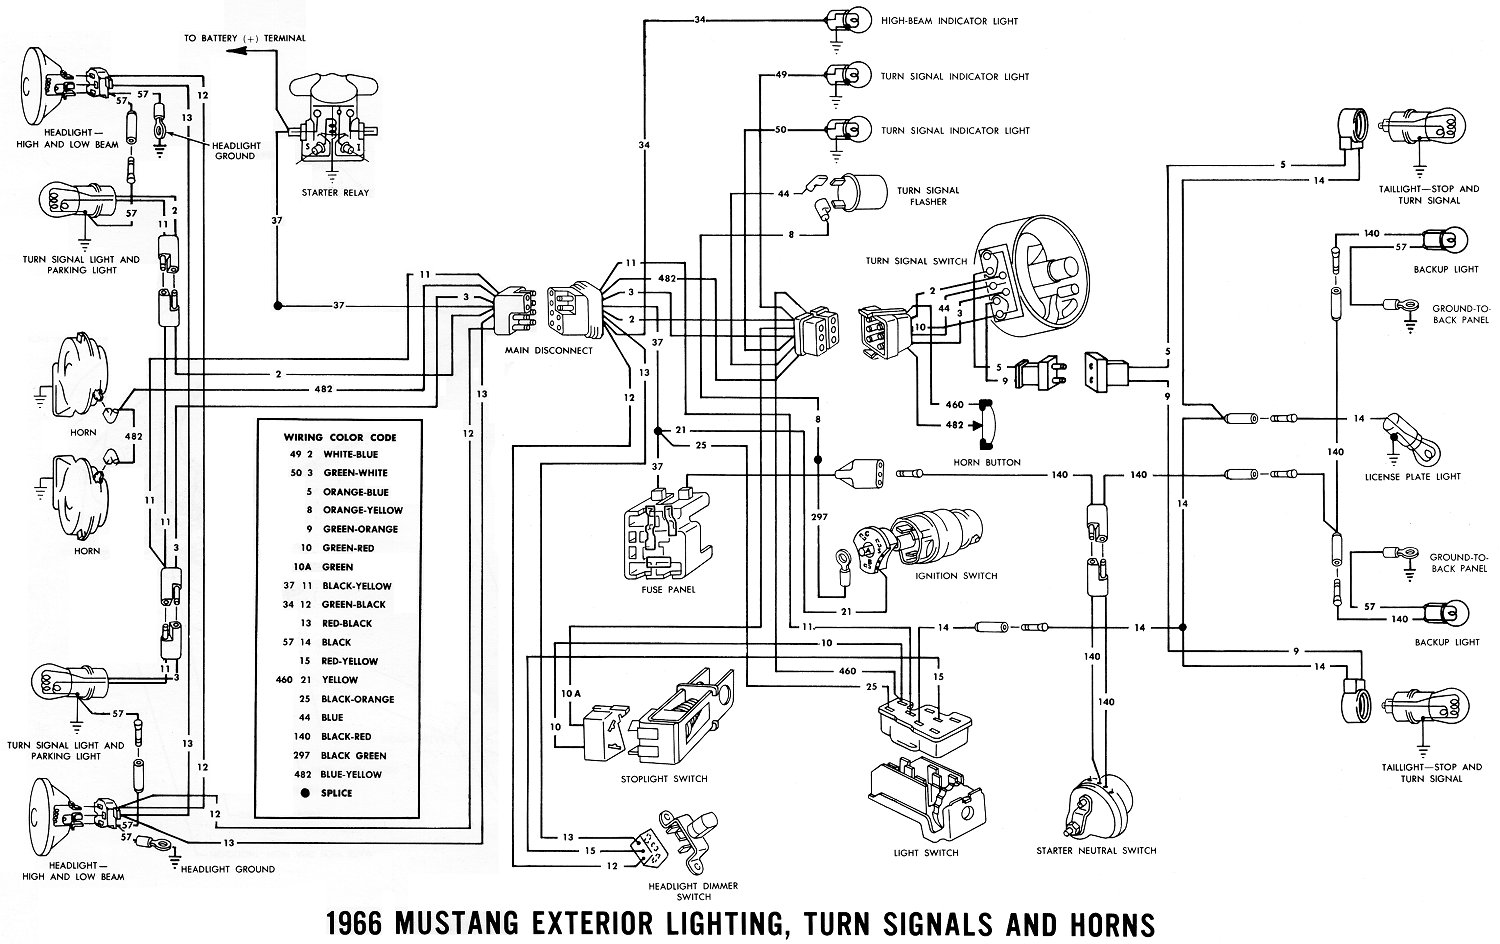 hight resolution of wiring diagram 69 mustang ignition switch powerking co 1968 ford mustang wiring diagram 1966 mustang ignition